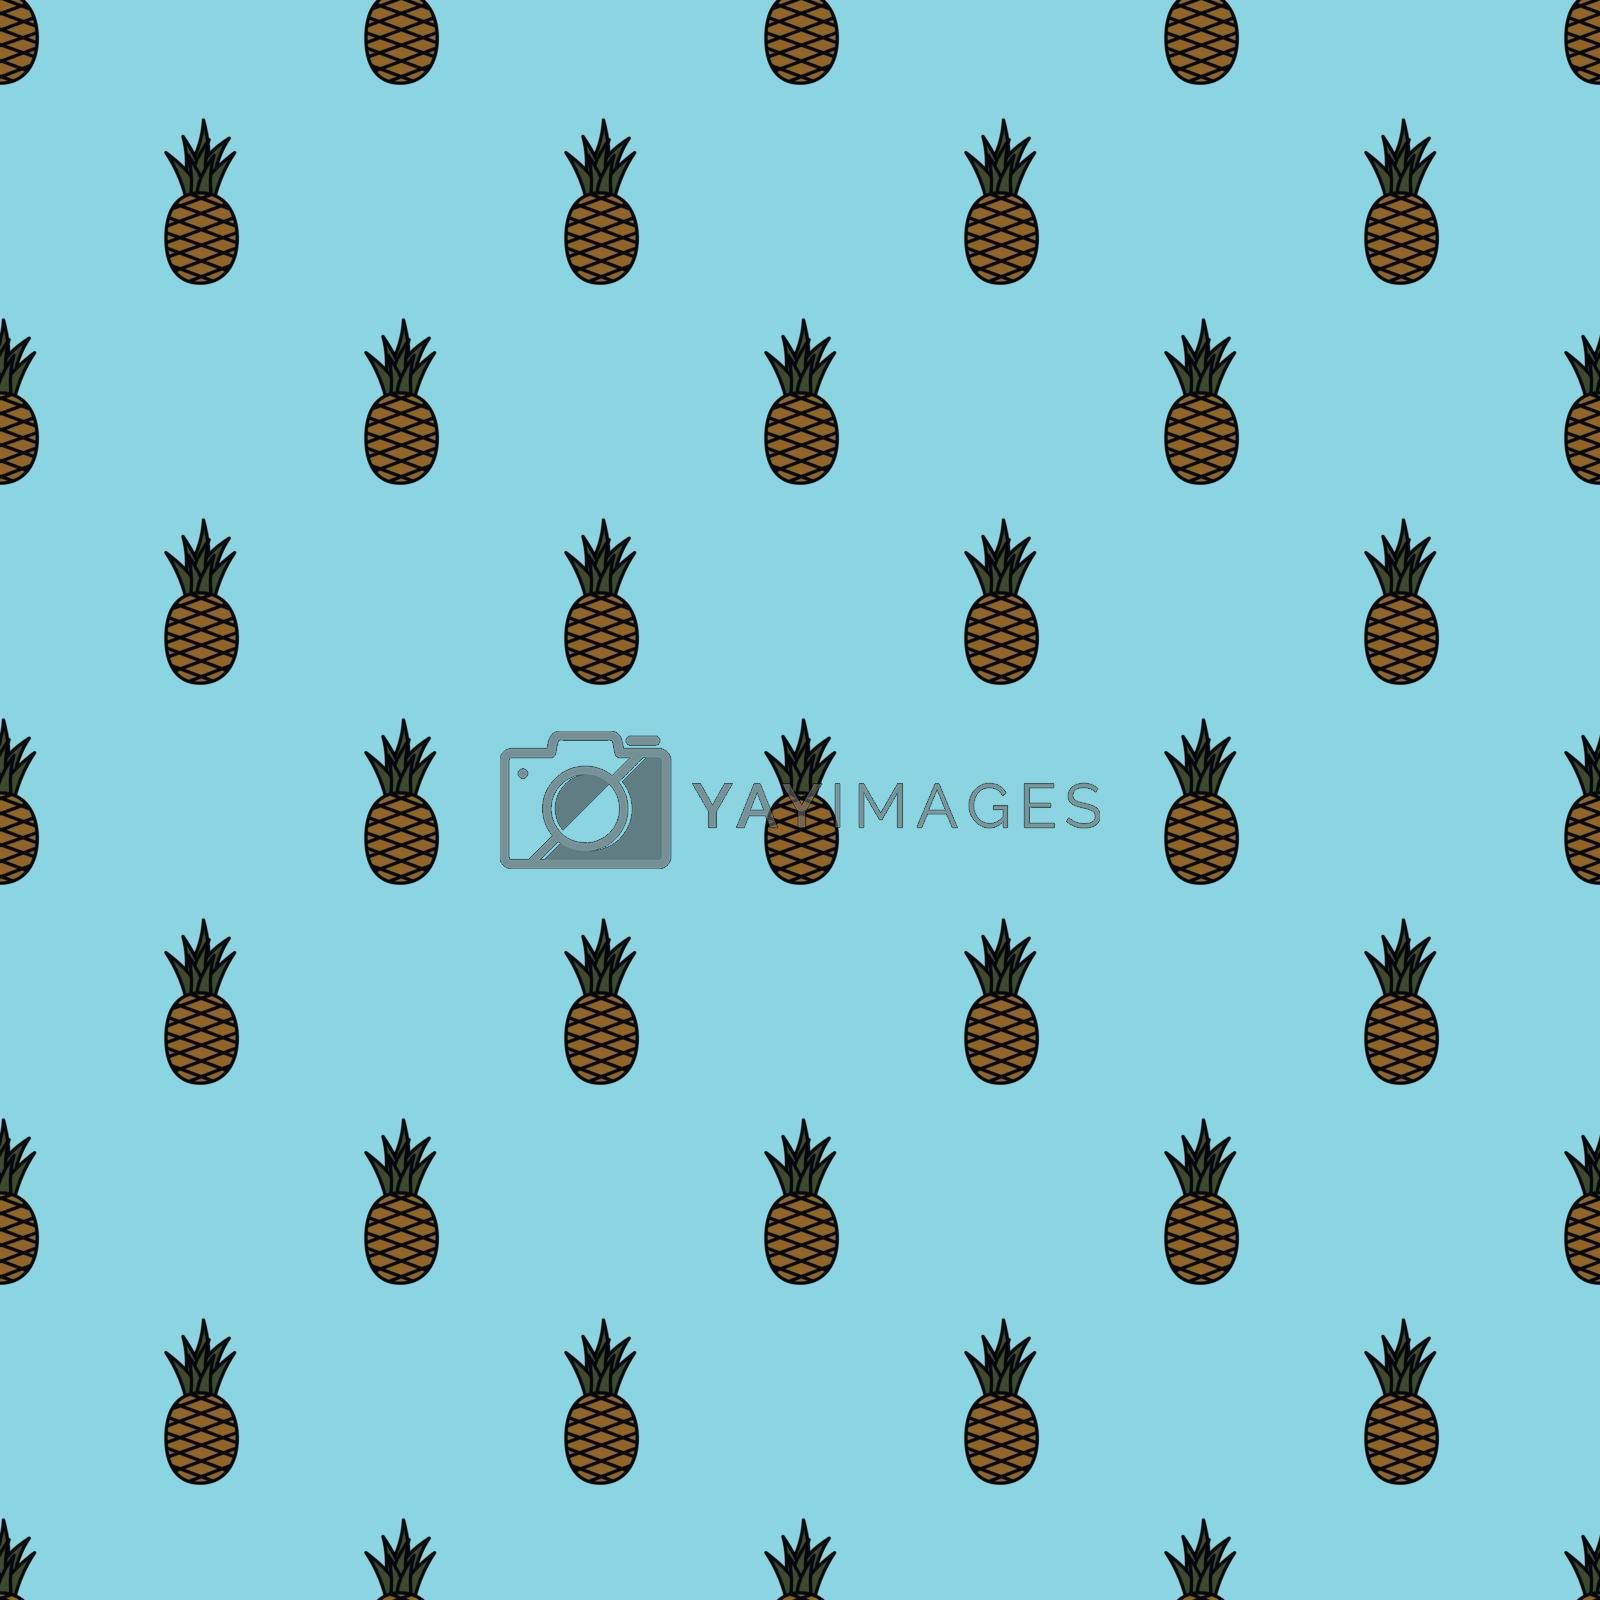 Seamless pineapple pattern. Cartoon pineapples on blue background. Tropical fruits pattern for textile, wallpapers, web, food seasonal card. Vector illustration